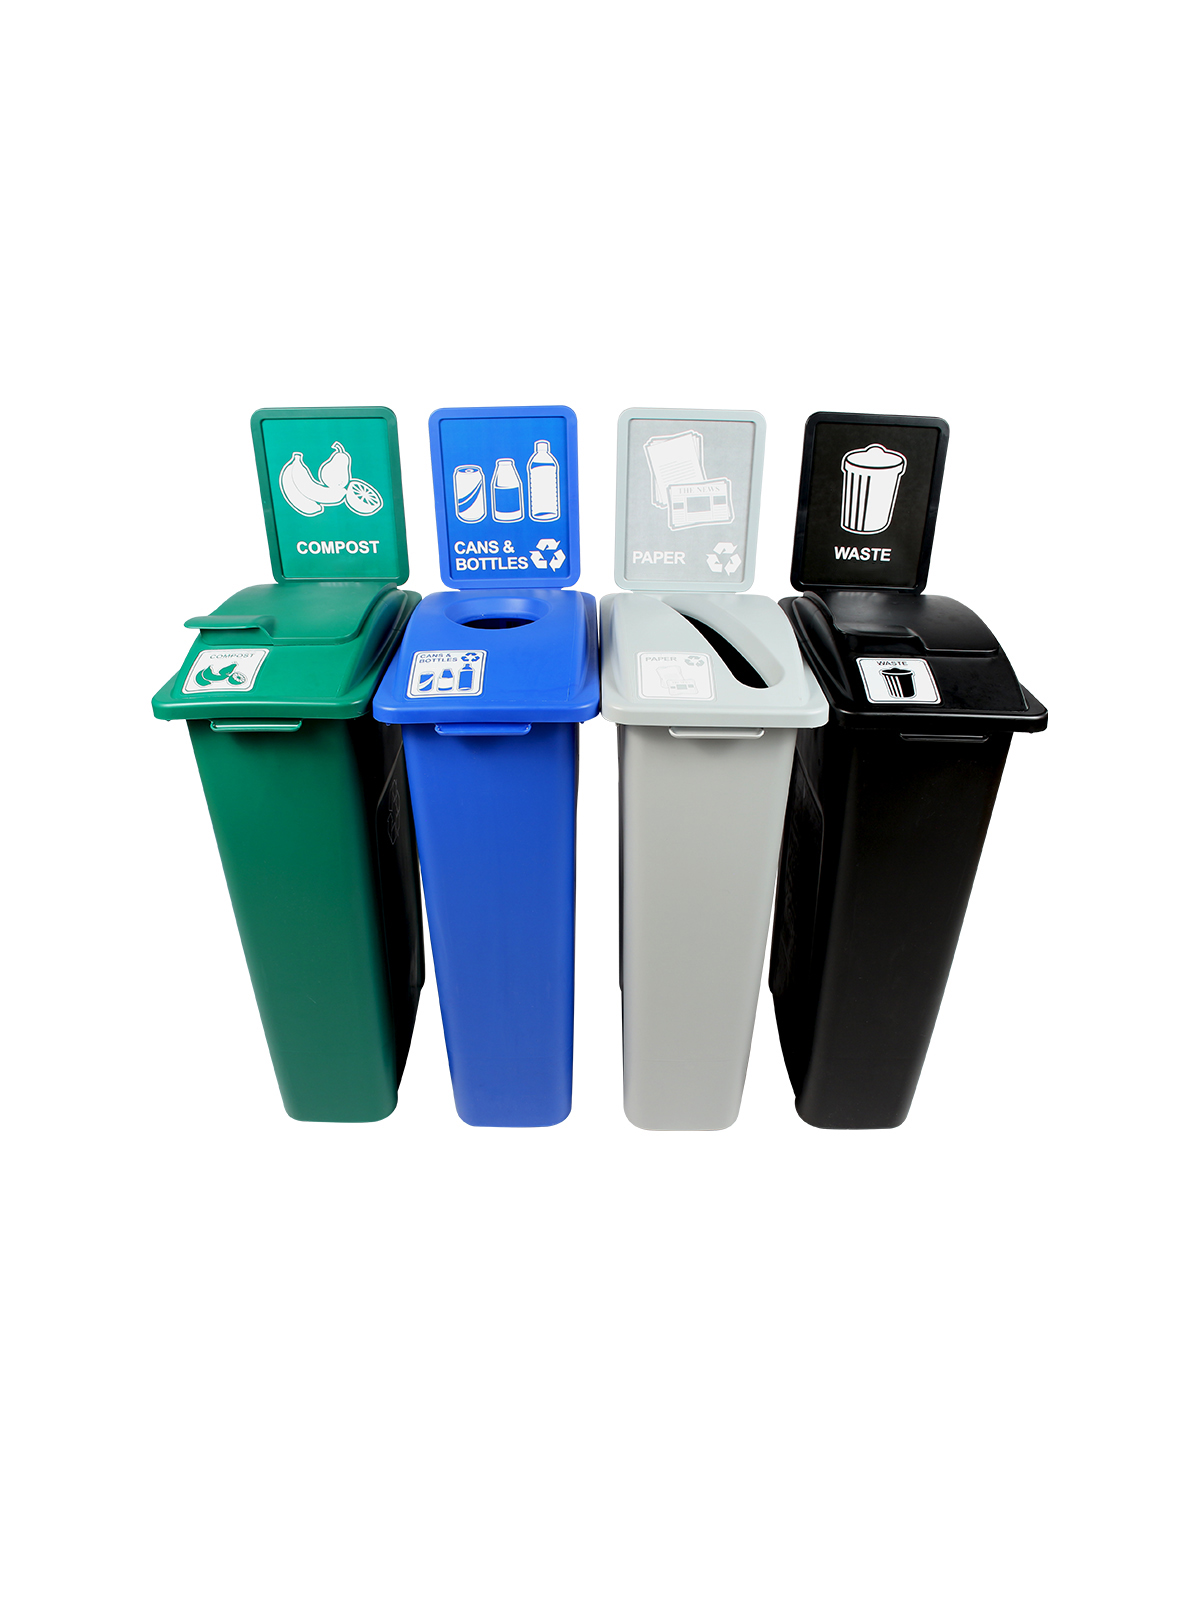 WASTE WATCHER - Quad - Cans & Bottles-Paper-Compost-Waste - Circle-Slot-Solid Lift-Solid Lift - Blue-Grey-Green-Black